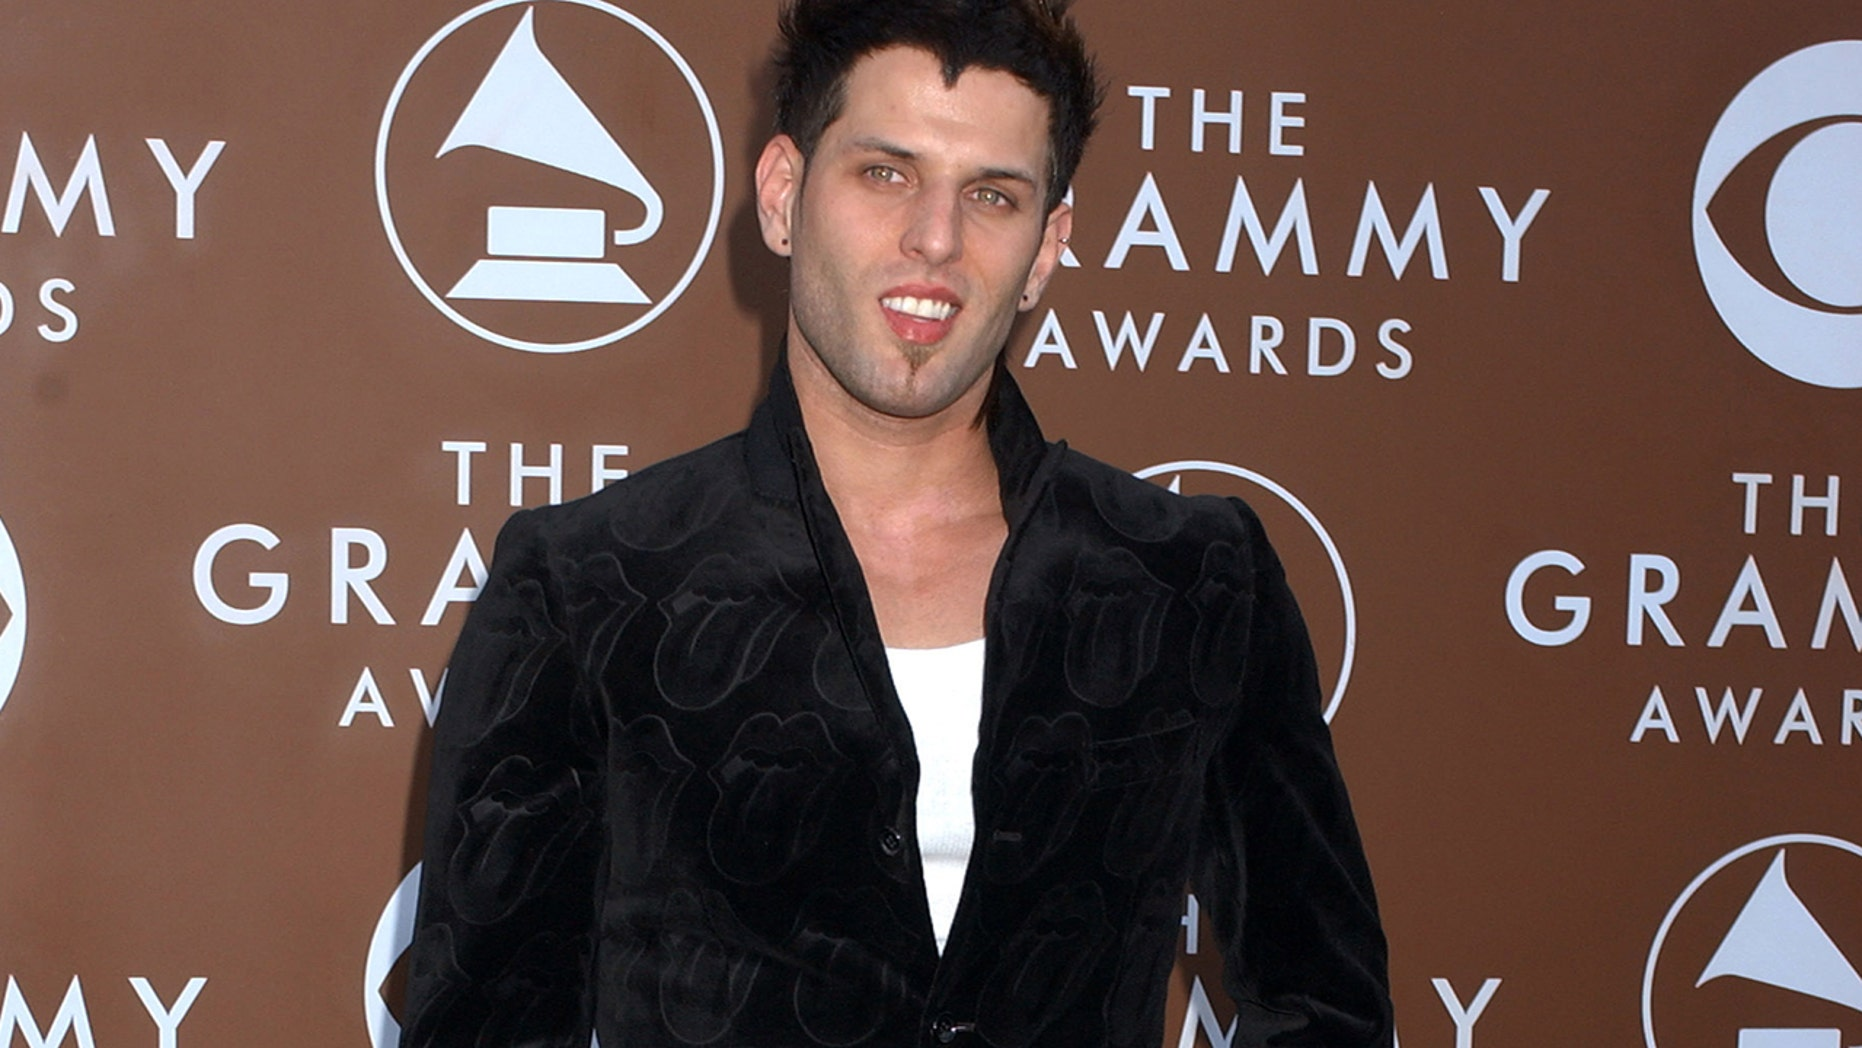 LFO Singer Devin Lima Dies of Cancer at 41